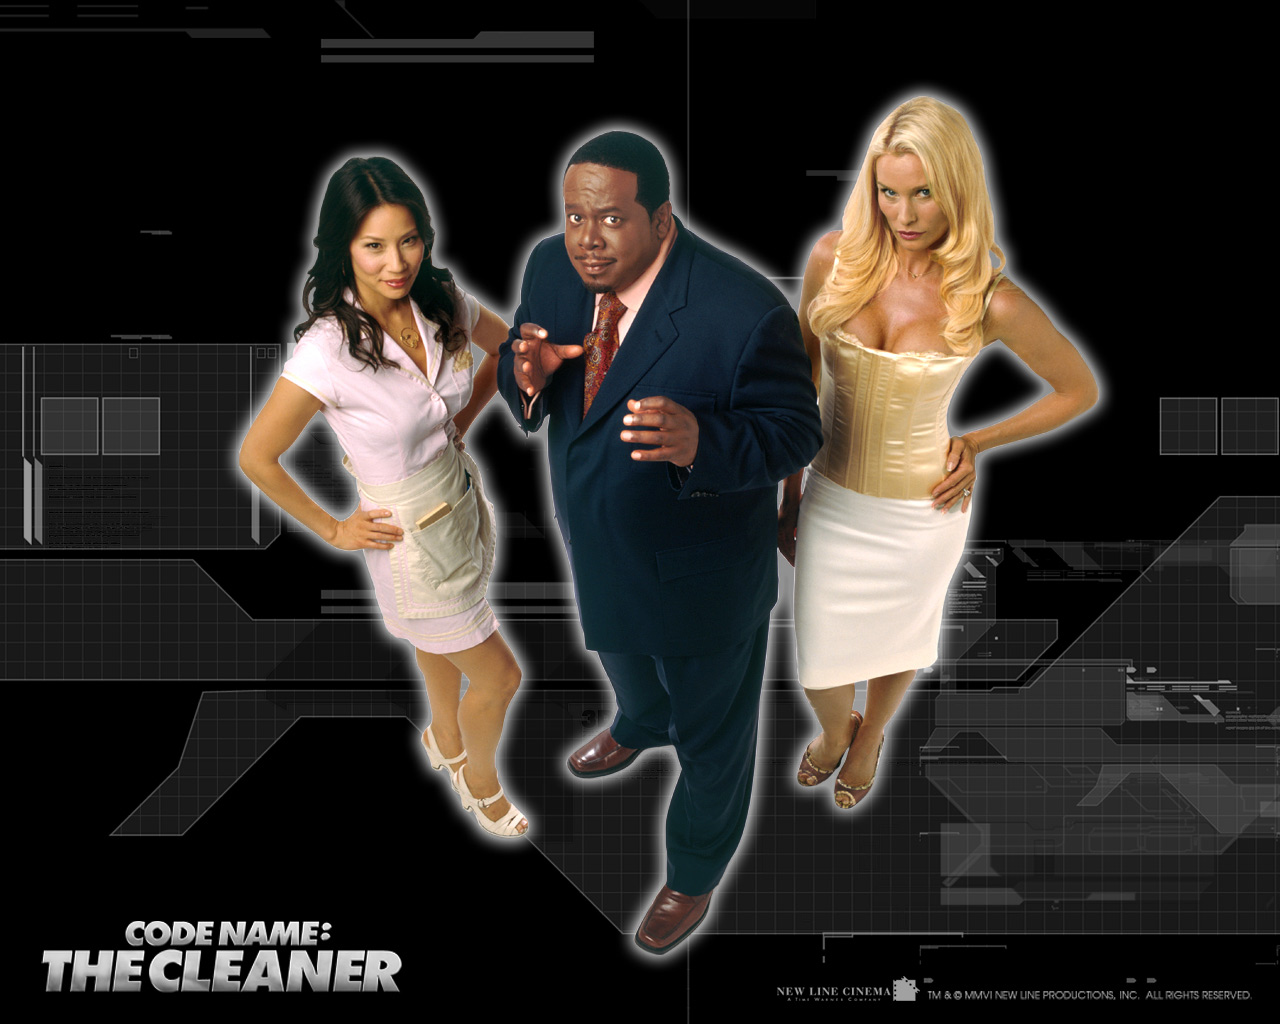 http://2.bp.blogspot.com/-rVErBqaAqmY/TzKbzcqEQQI/AAAAAAAABp0/vedzK3PkWMA/s1600/cedric-the-entertainer-wallpaper-1-749677.jpg